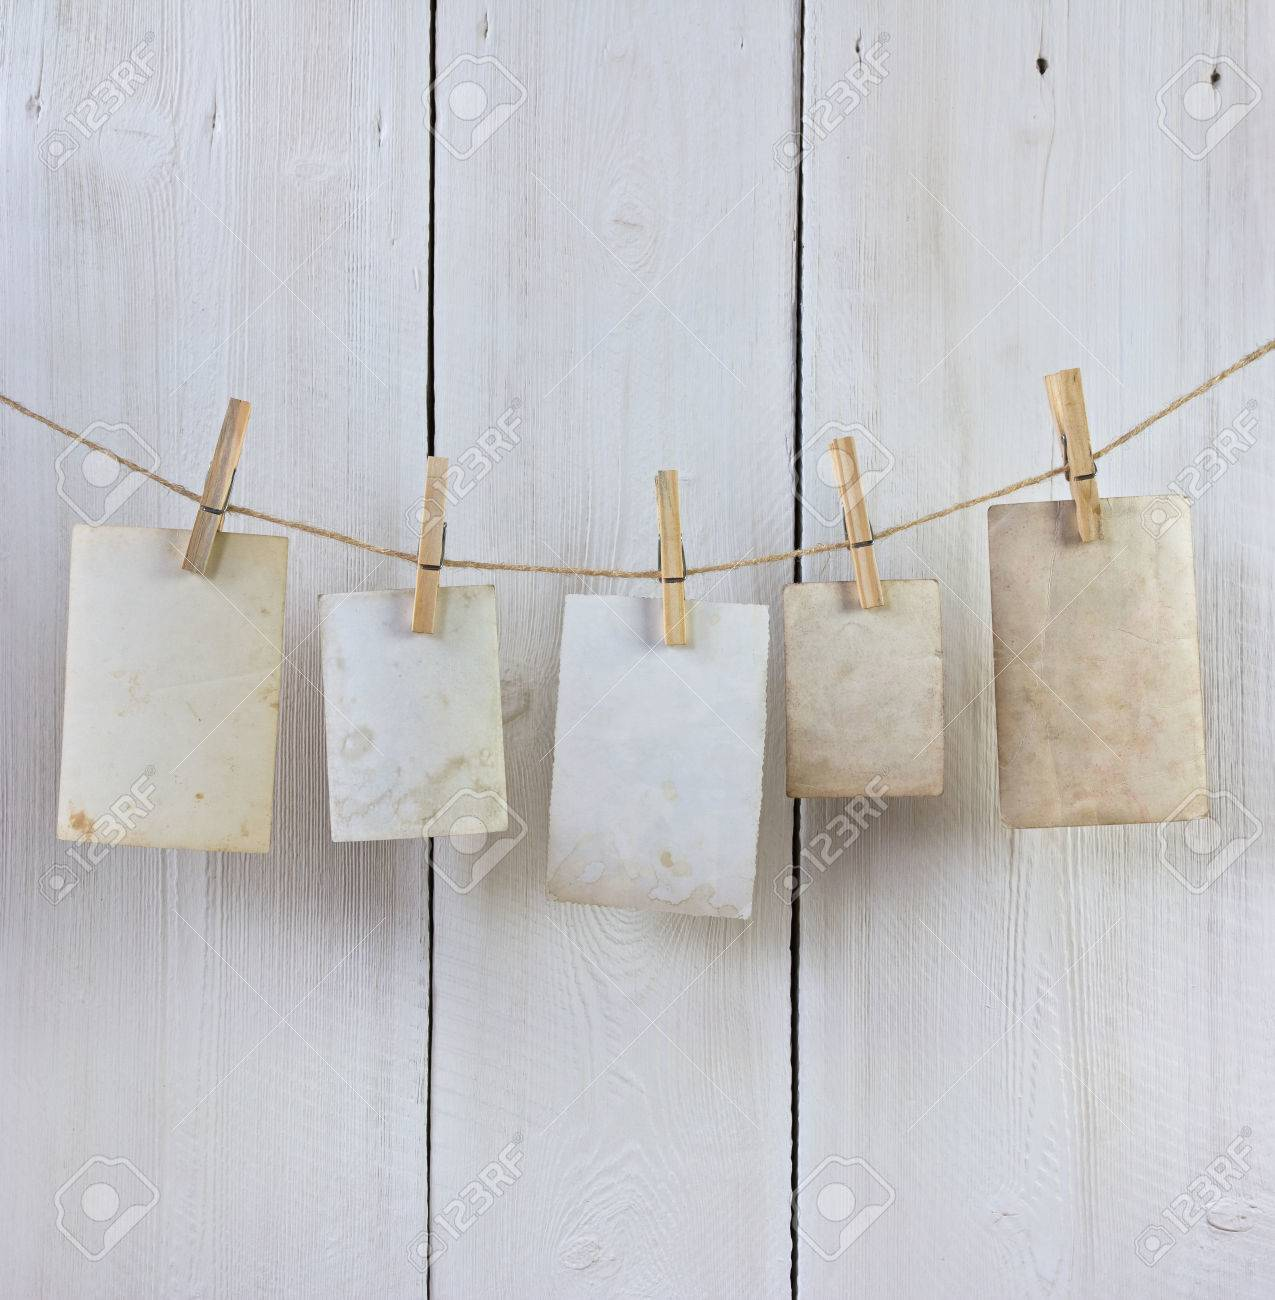 old photos hanging on the rope with a clothespin against white planks - 41921441